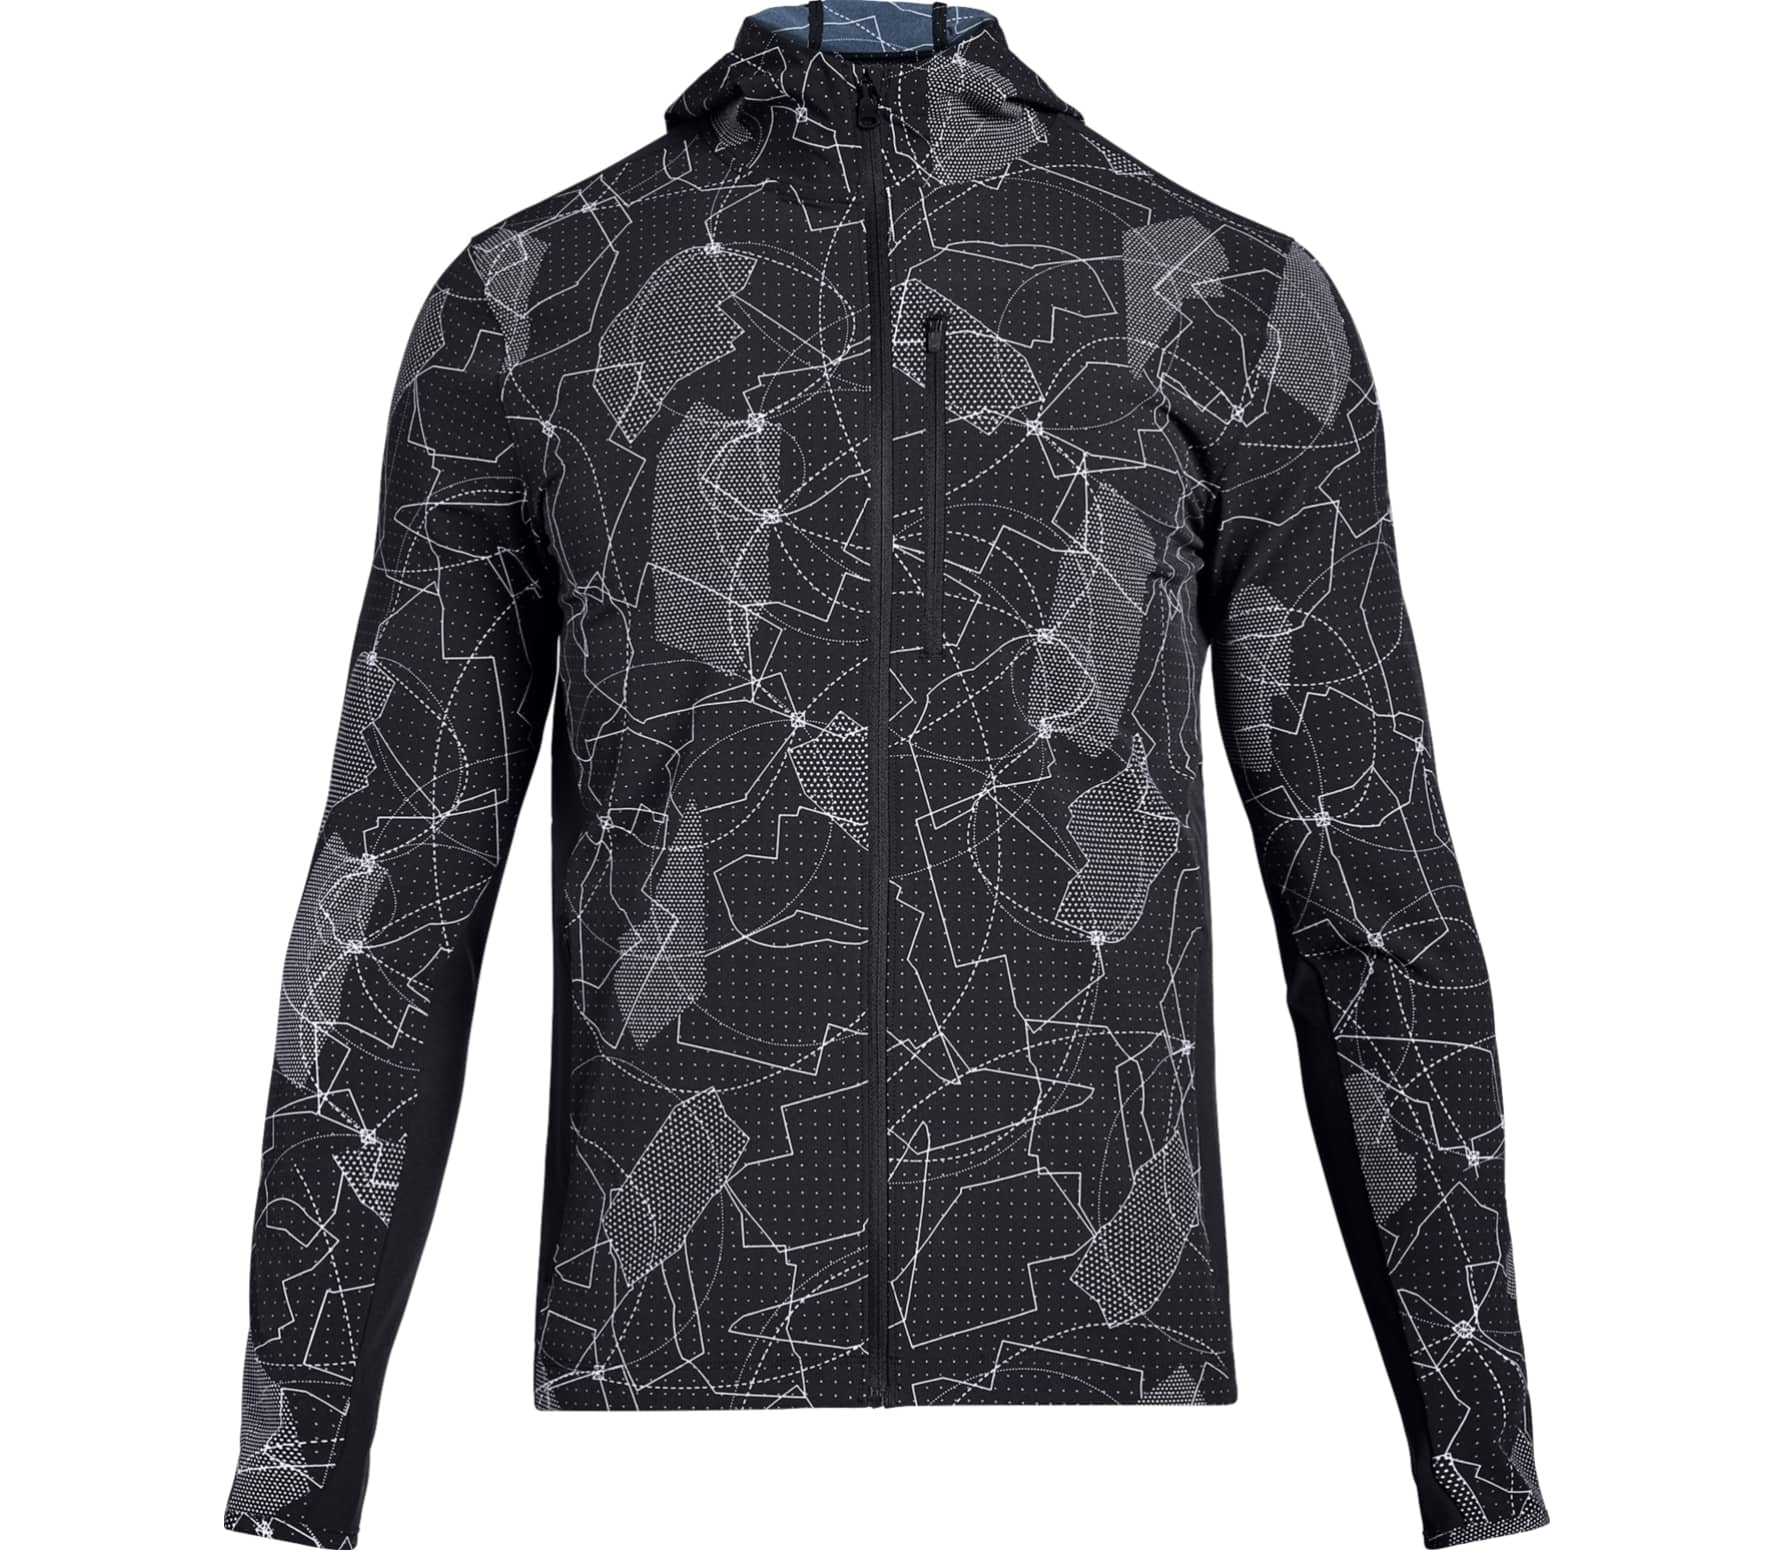 Under Armour - Outrun The Storm men's running jacket (black) - M thumbnail